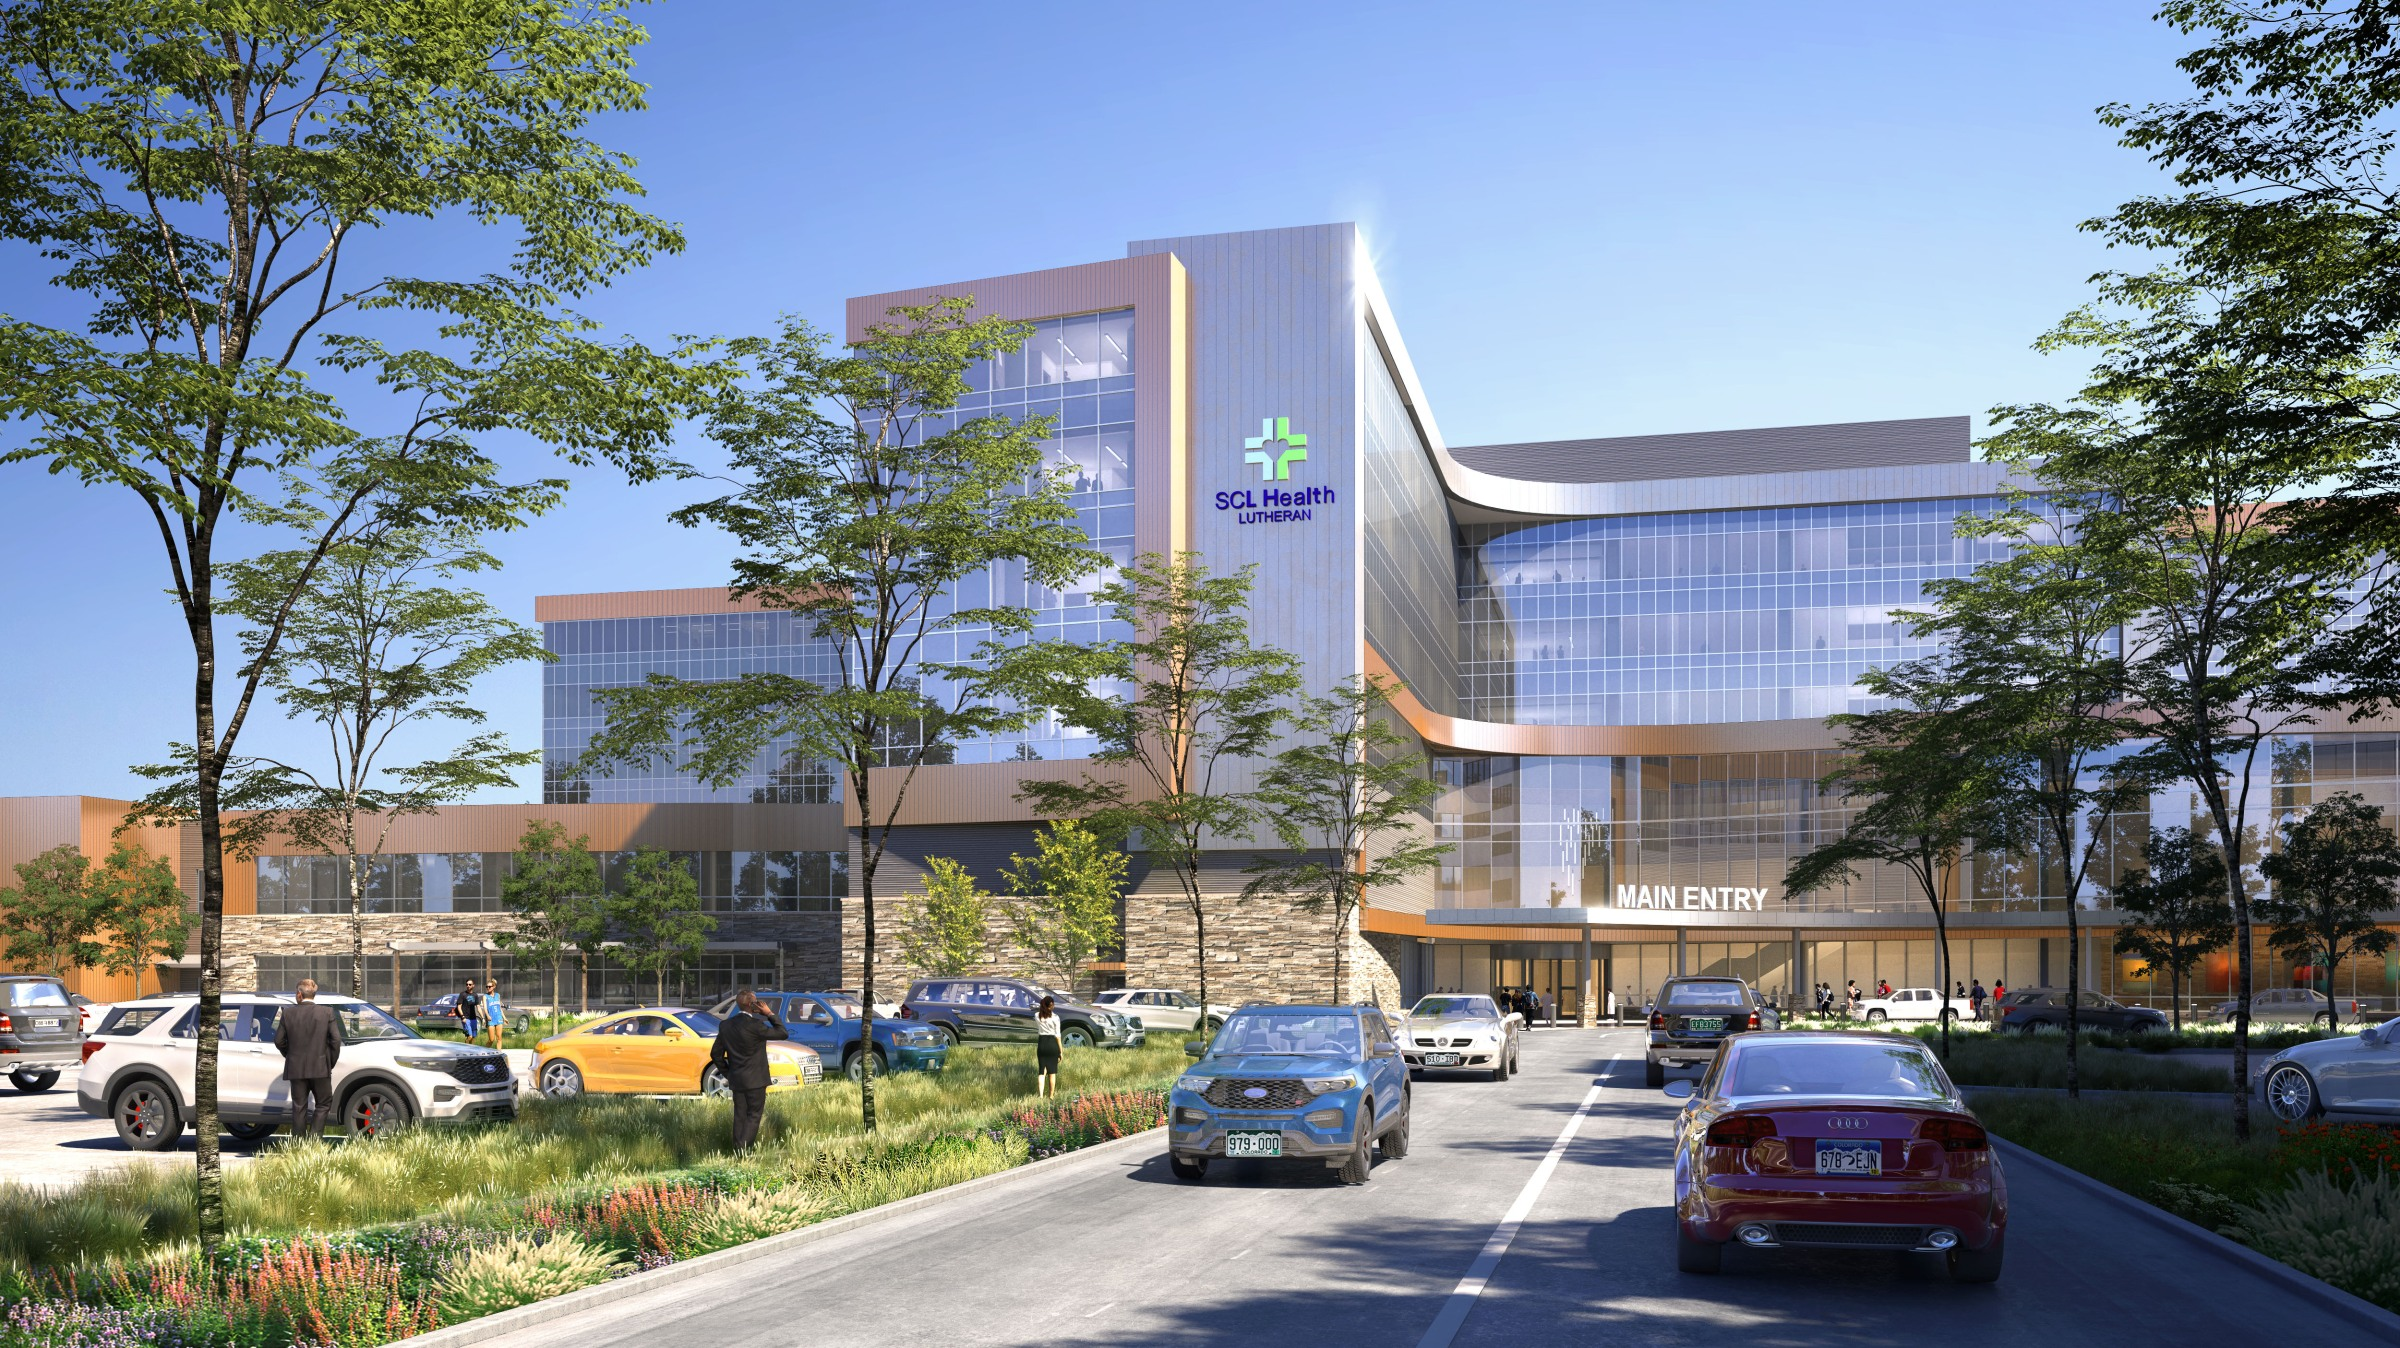 Lutheran Medical Center new location Wheat Ridge Clear Creek Crossing new campus